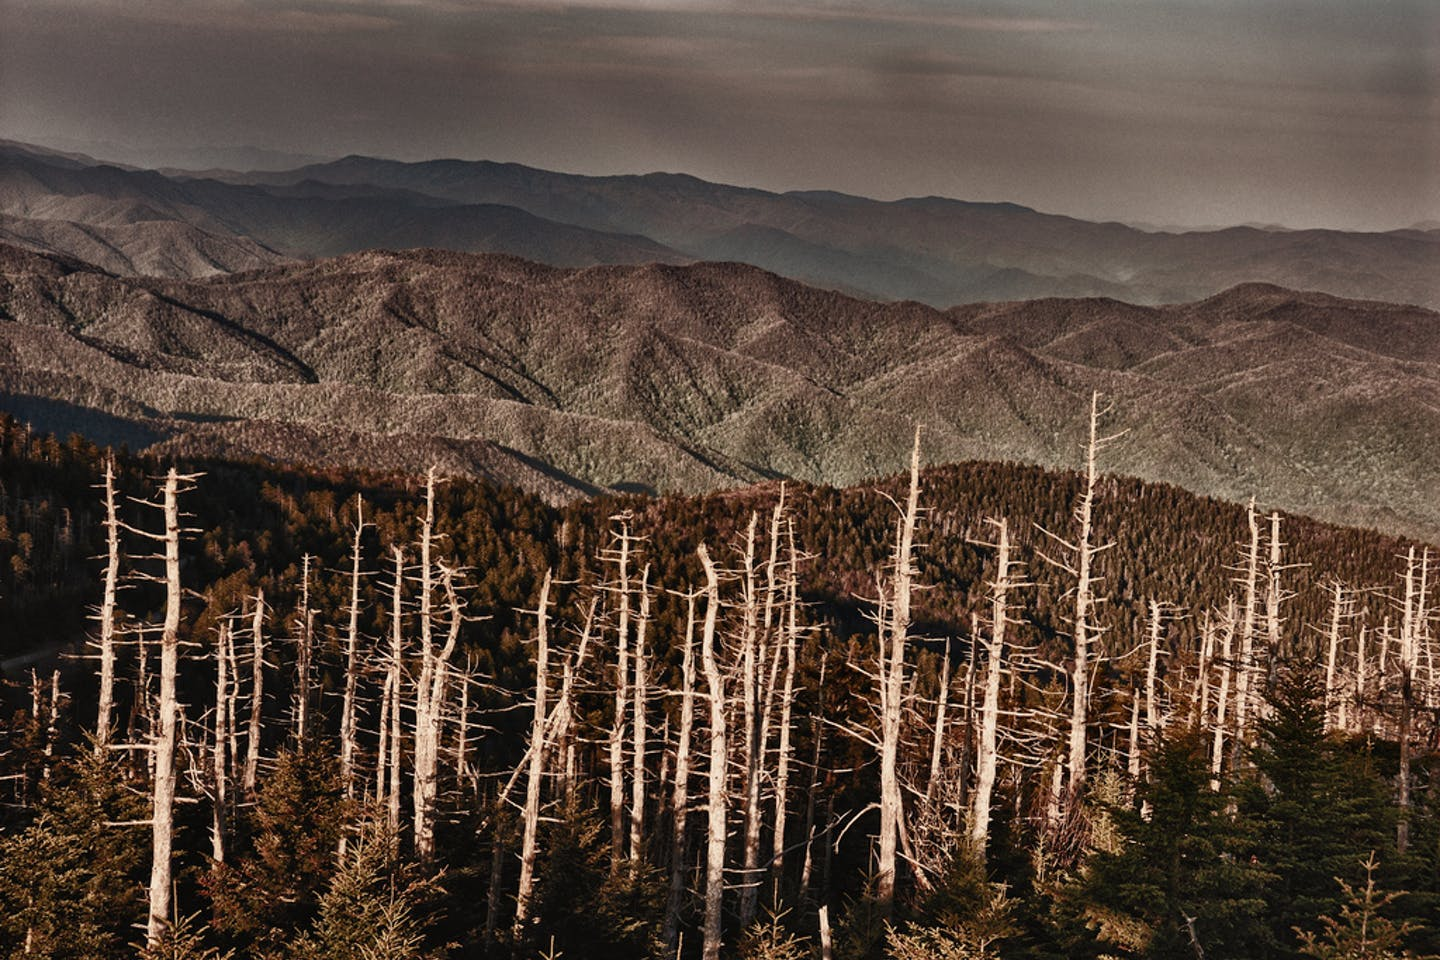 Trees made bare by acid rain in Smokey Mountain National Park, USA